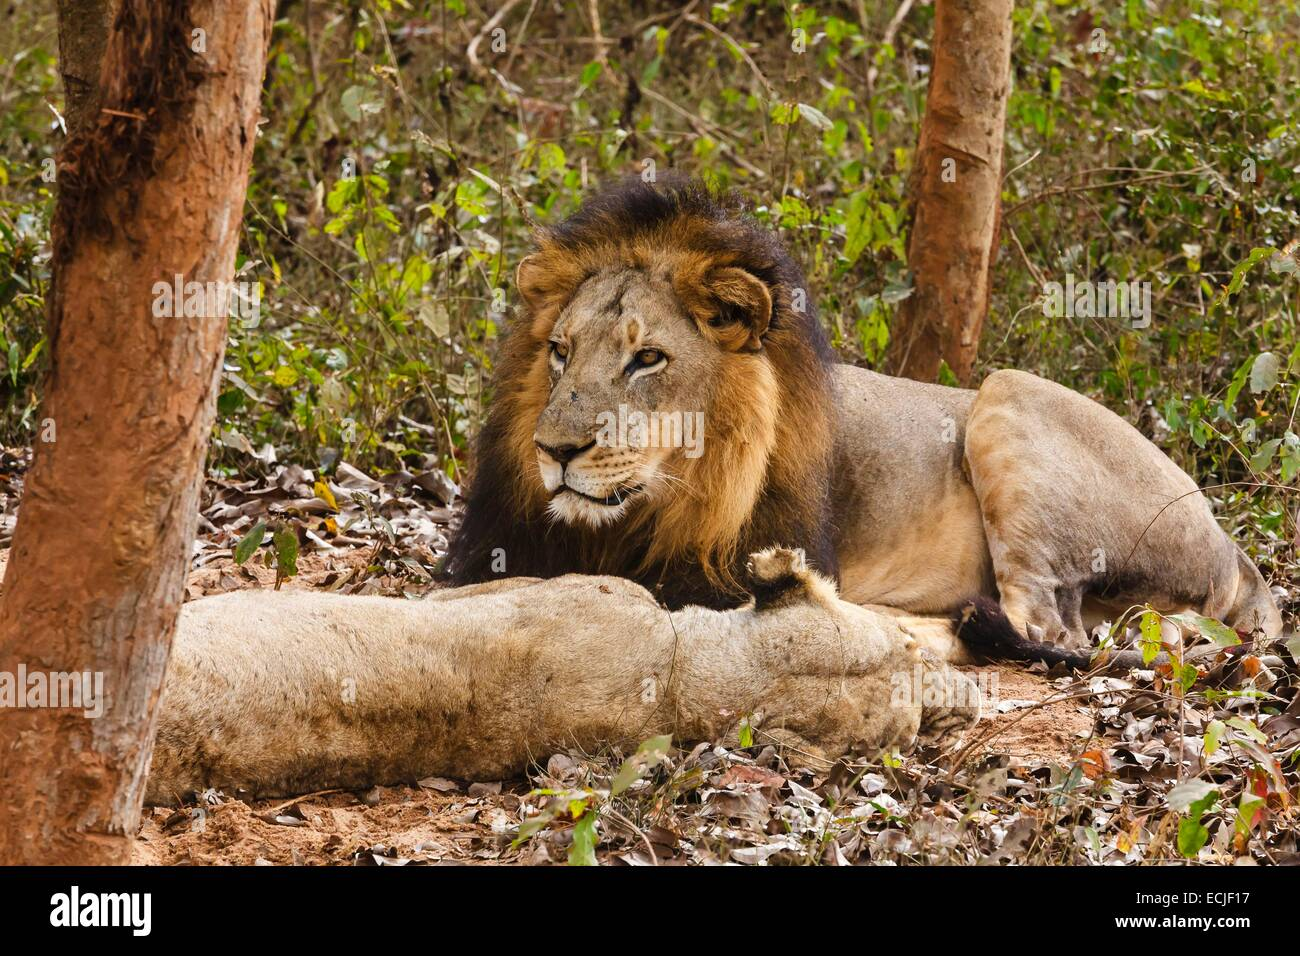 India, Odisha, Bhubaneswar, Nandankanan zoo, Asiatic lion - Stock Image